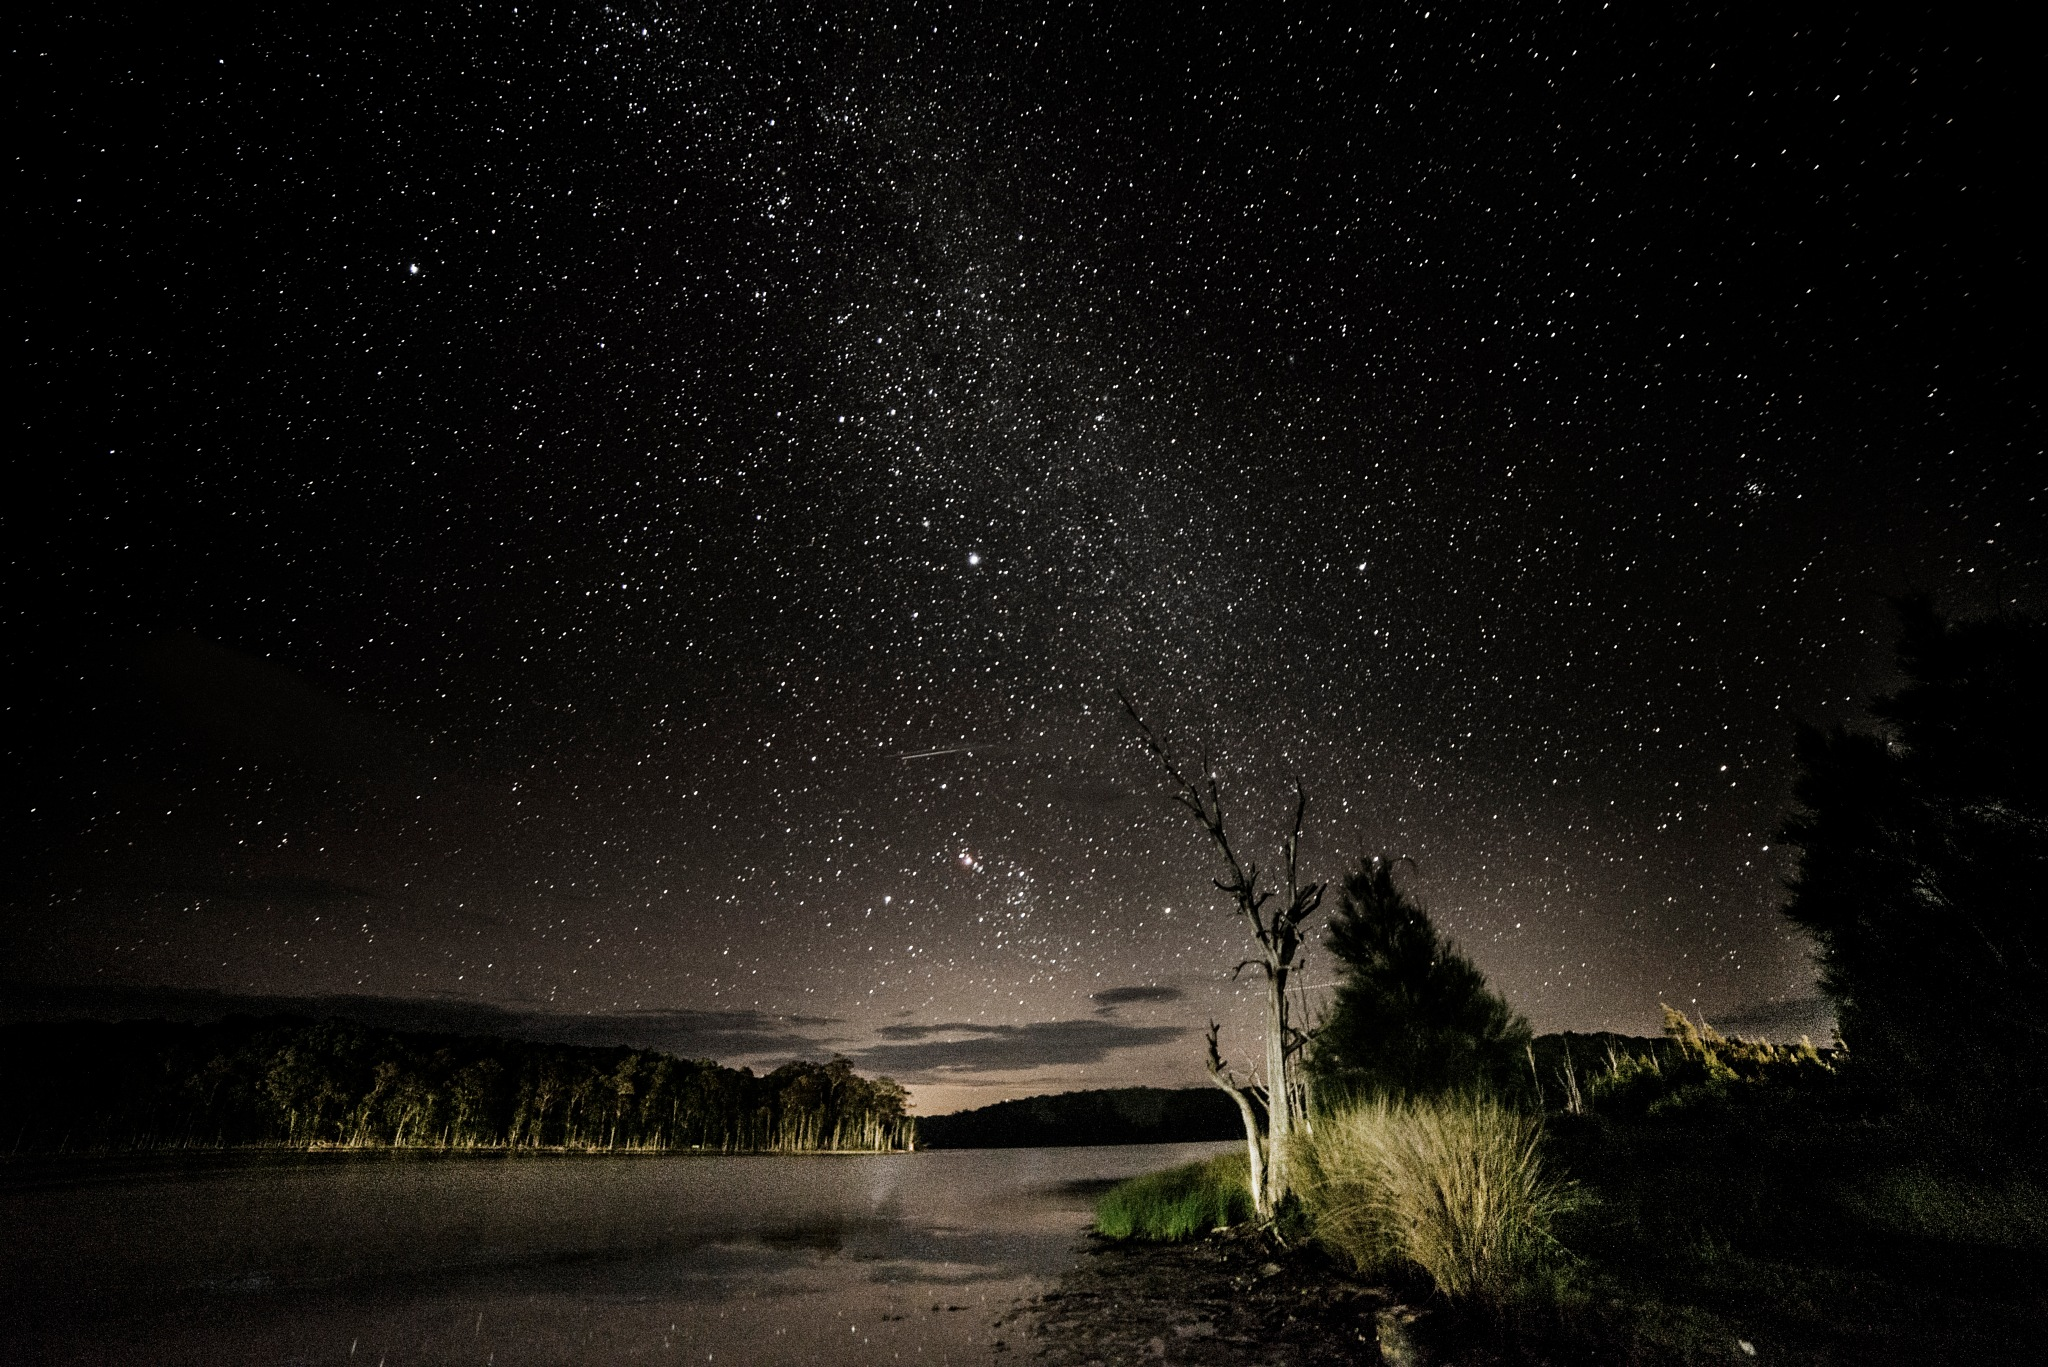 Lake and Tree Under the Stars by Graham Levi